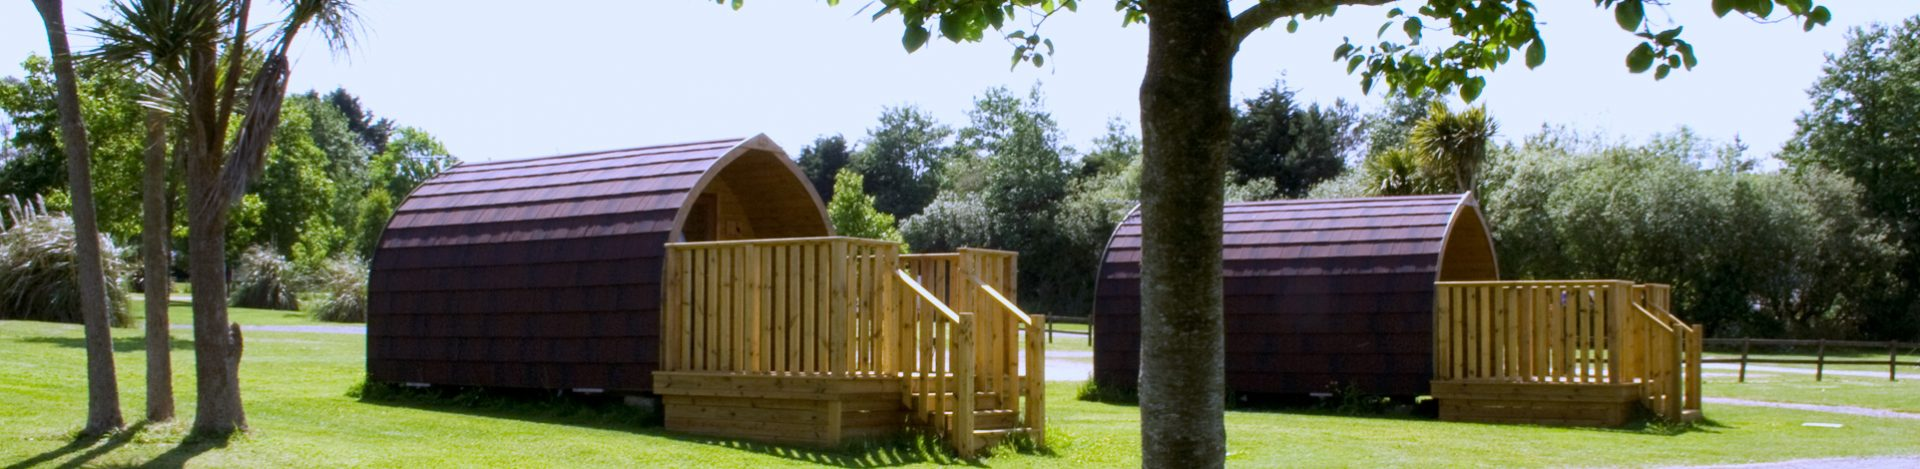 Holiday park prices